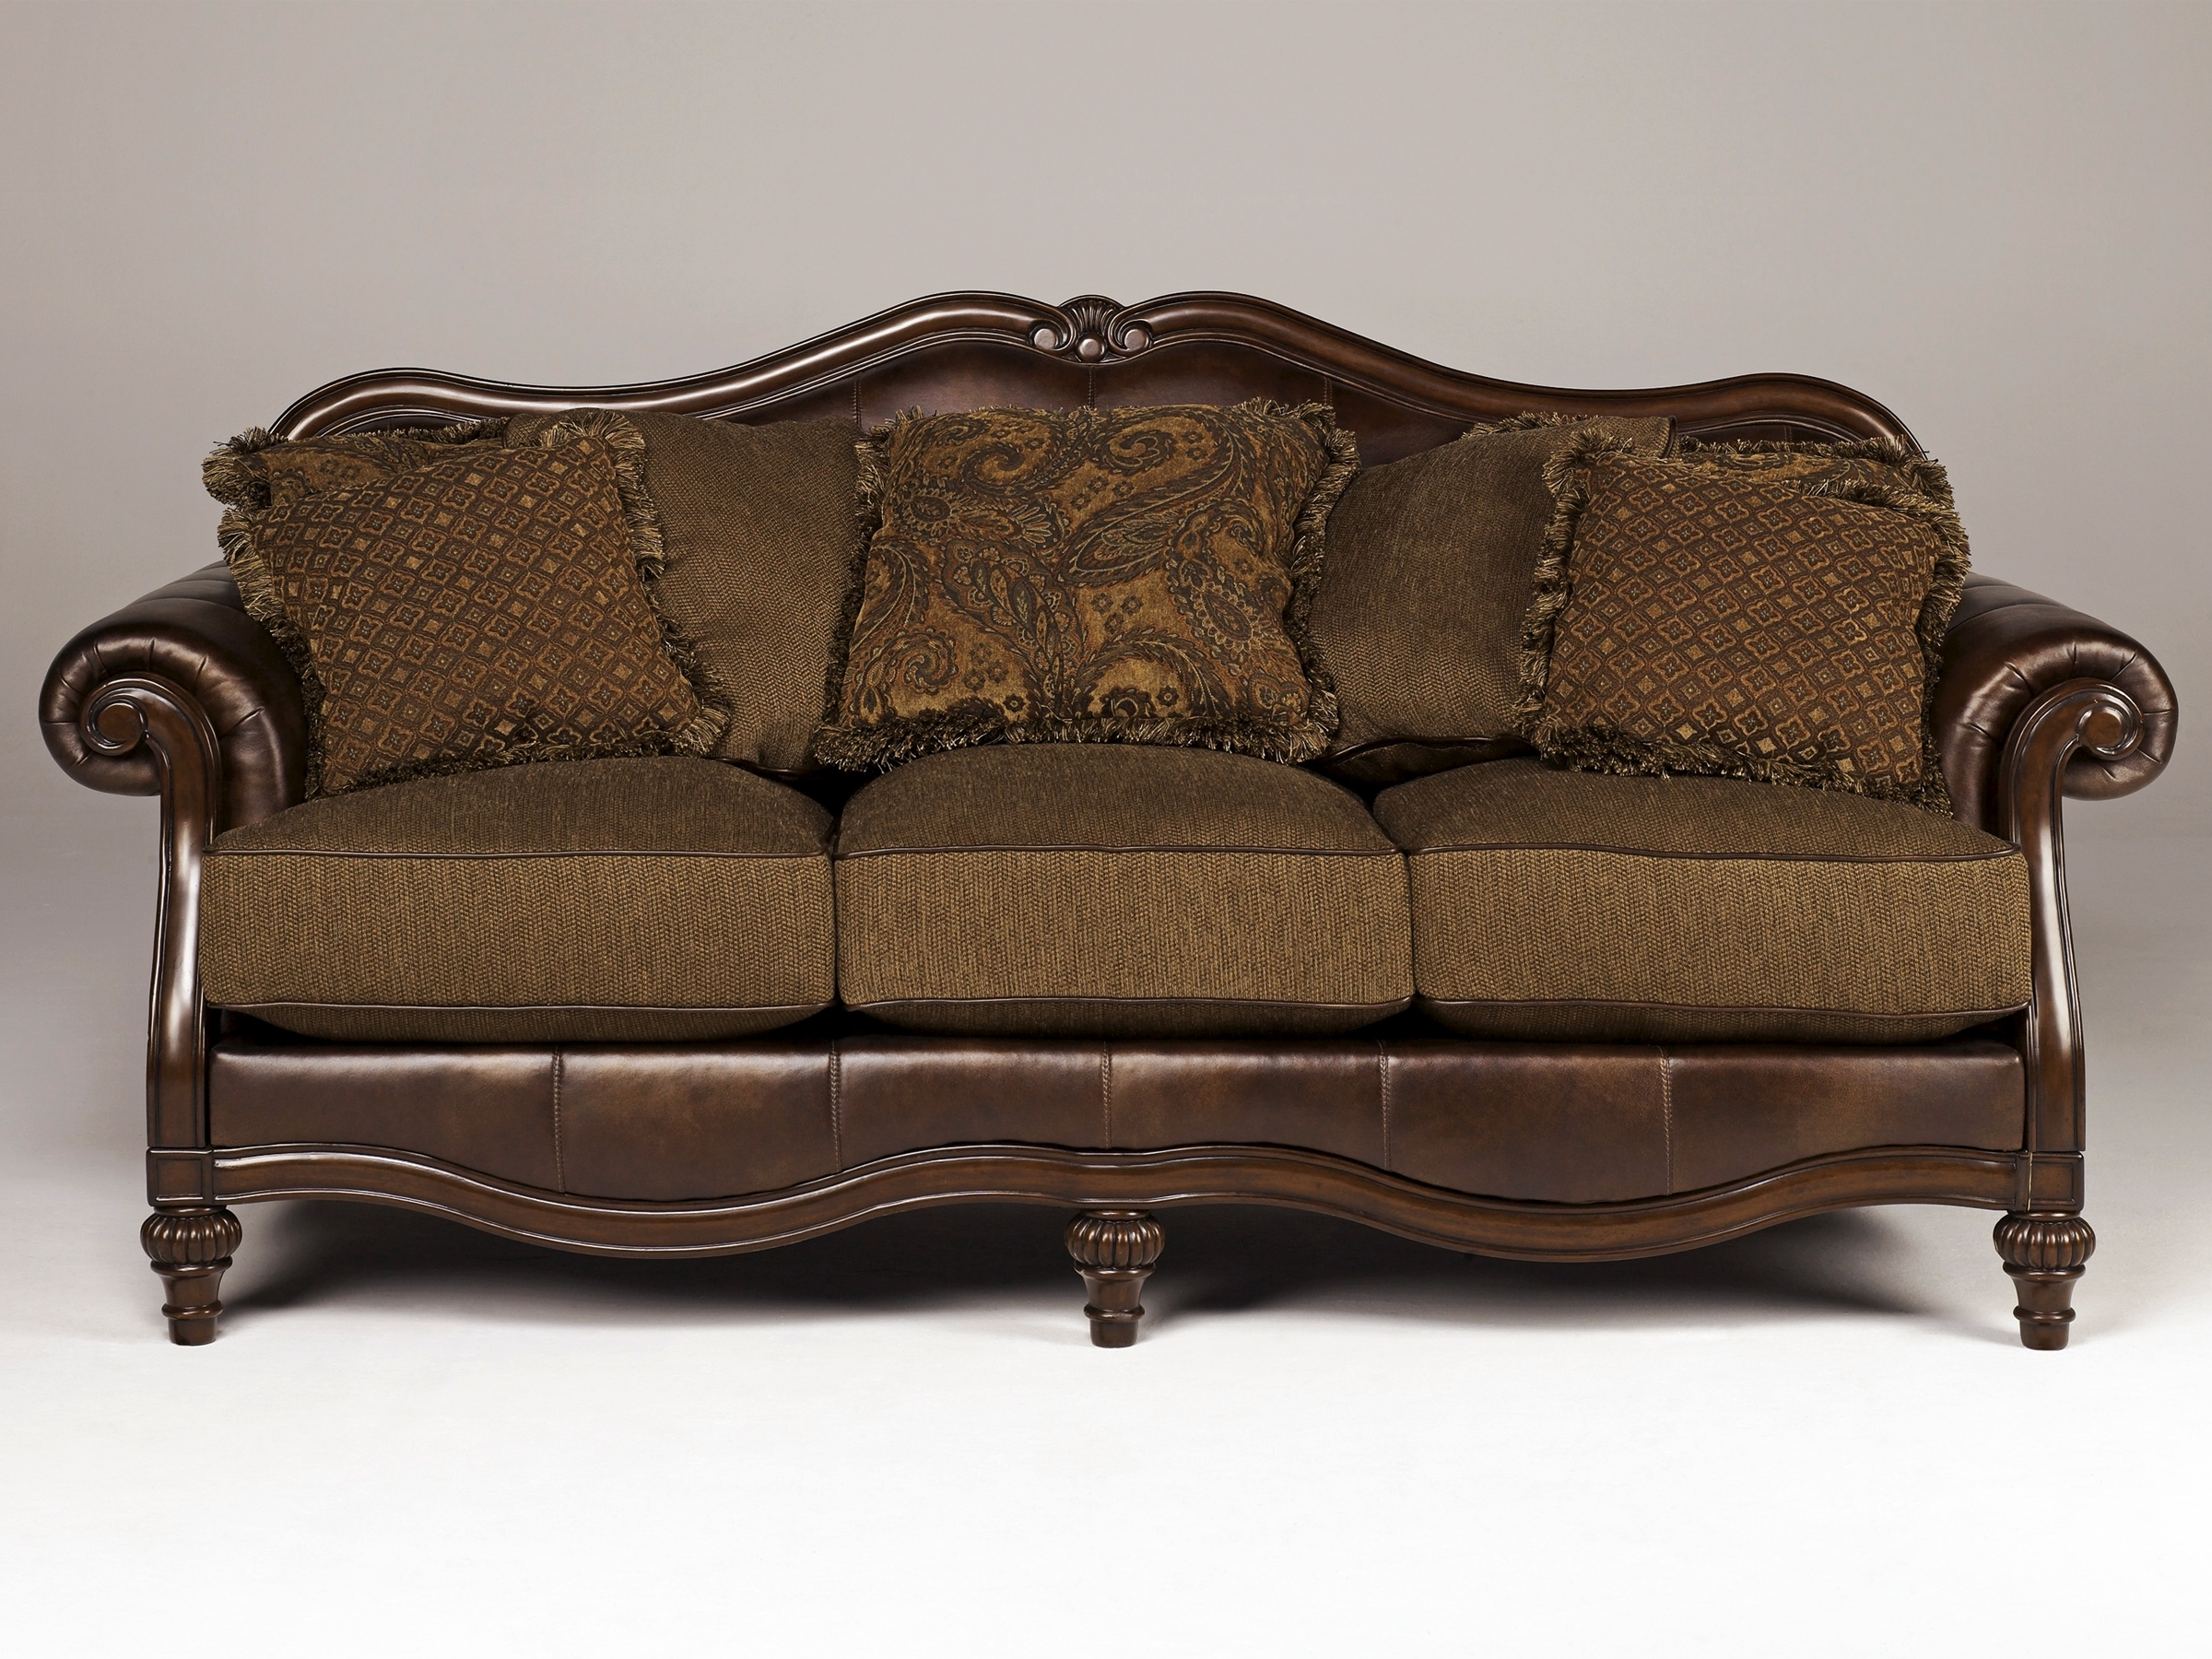 Preferred 78437 Within Antique Sofas (View 8 of 15)